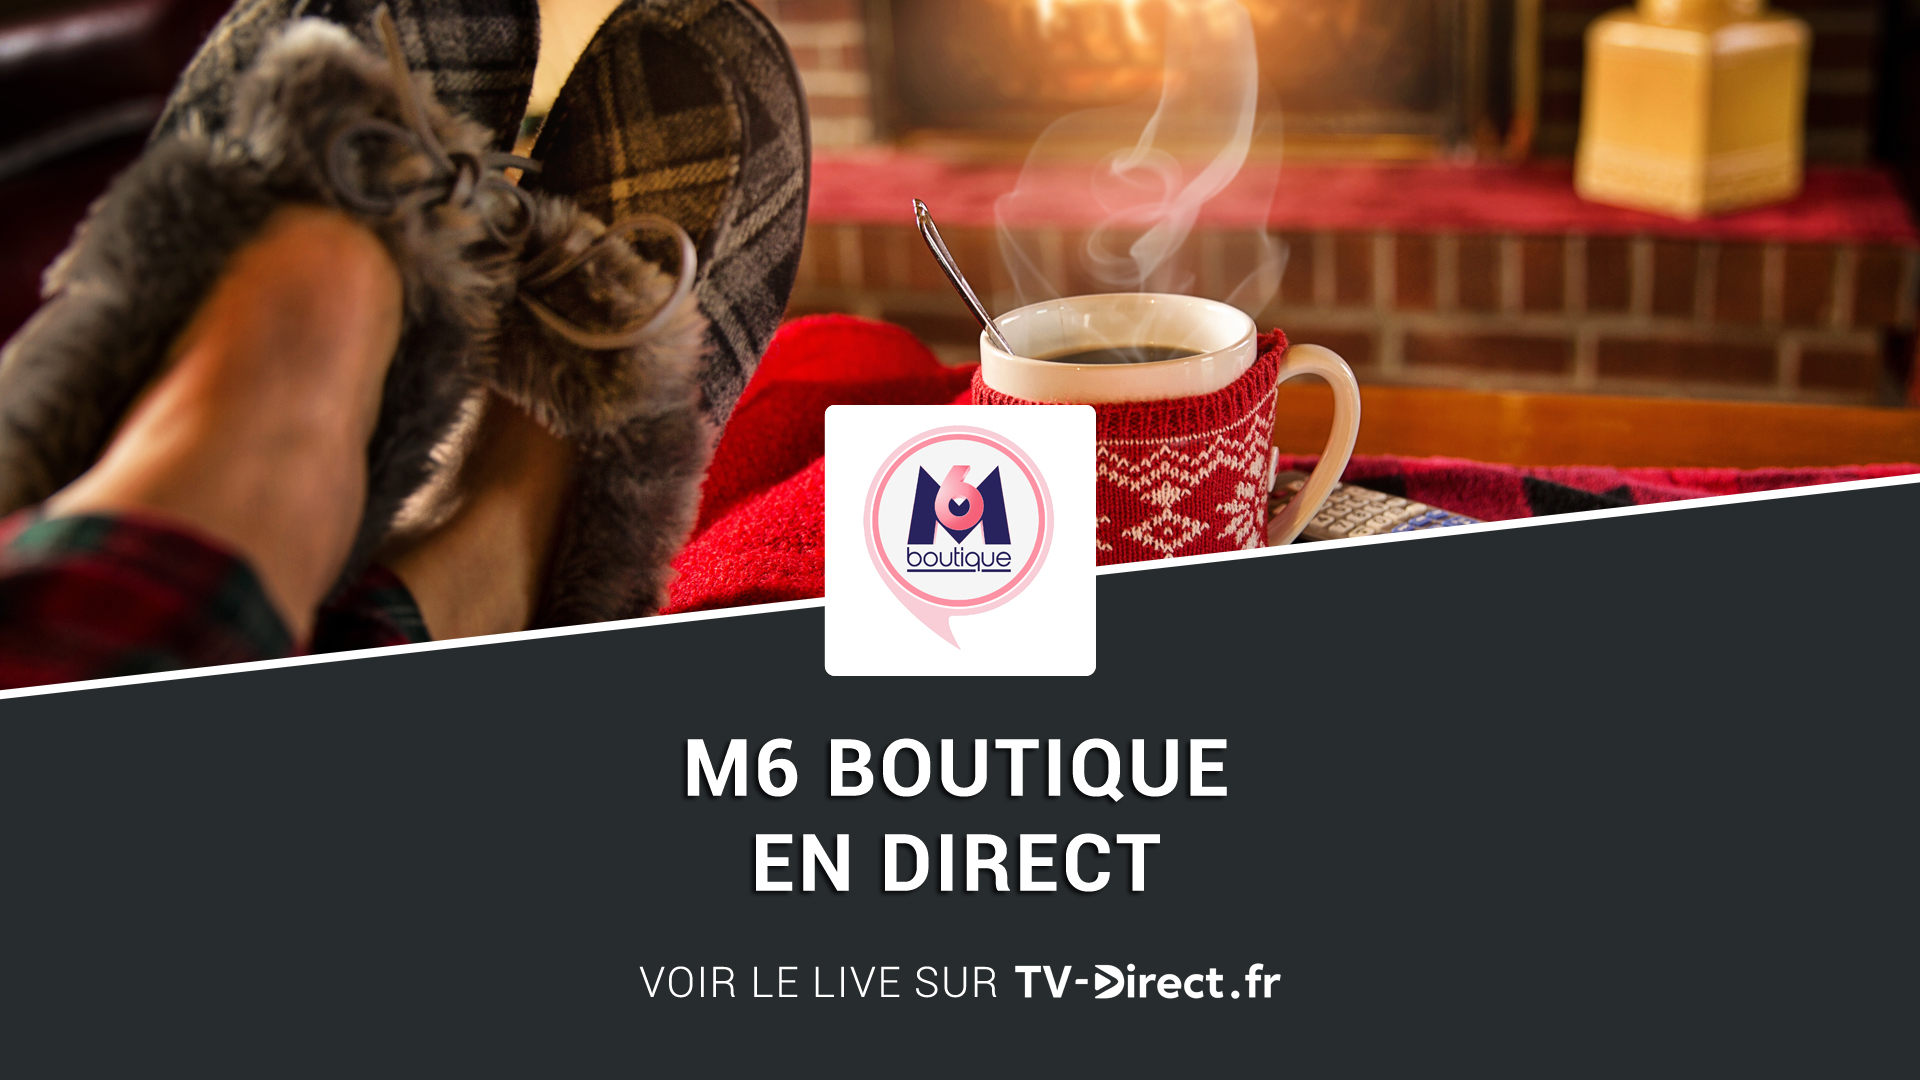 m6 boutique direct regarder m6 boutique live sur internet. Black Bedroom Furniture Sets. Home Design Ideas